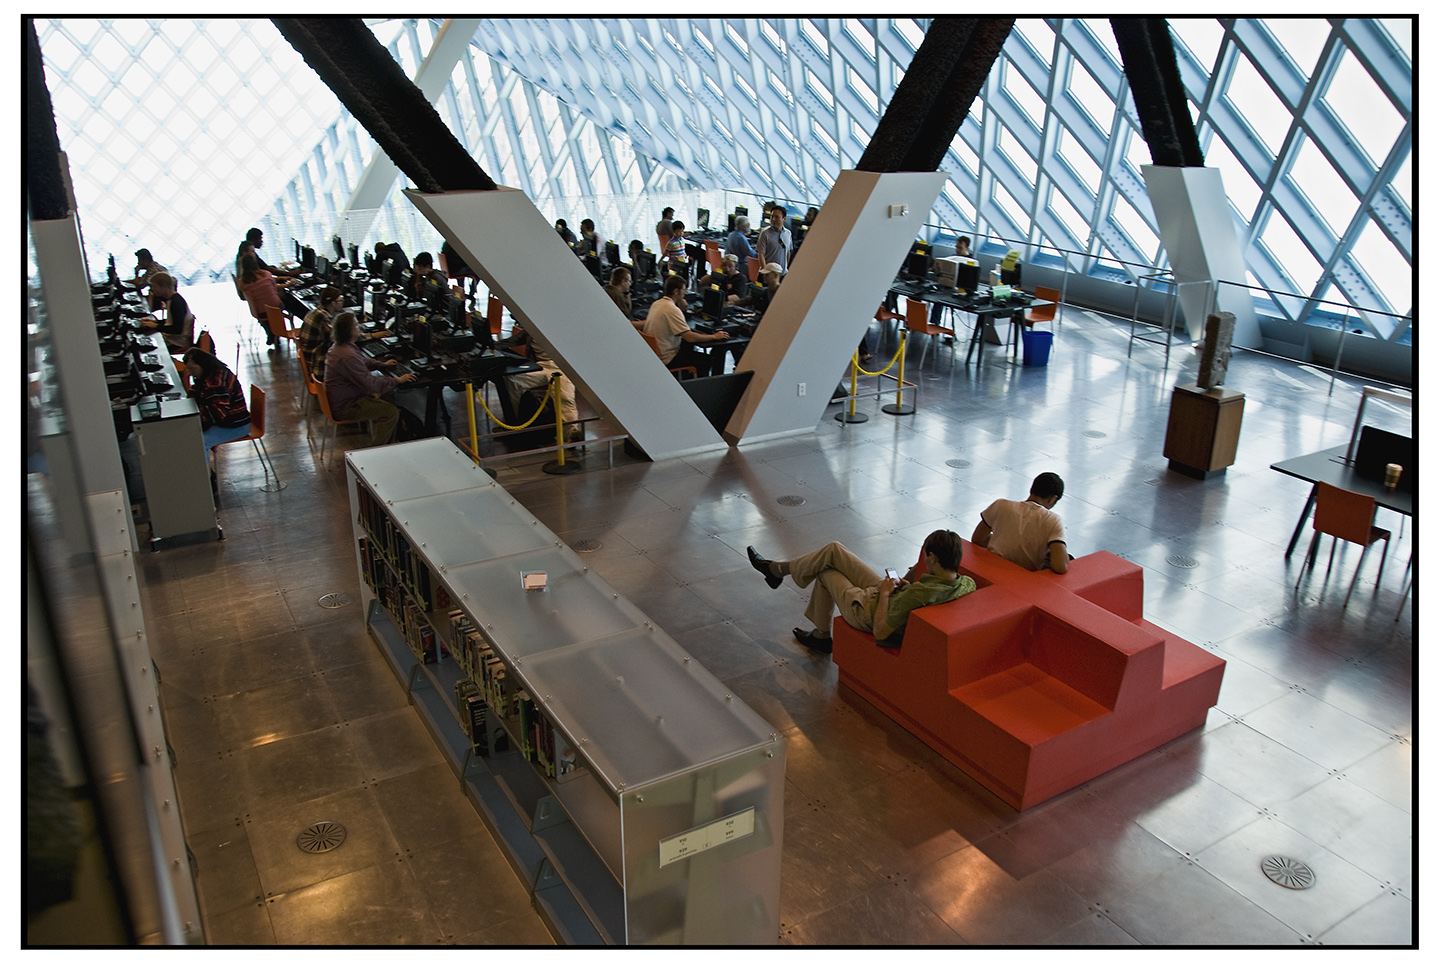 Interior - Seattle Public Library